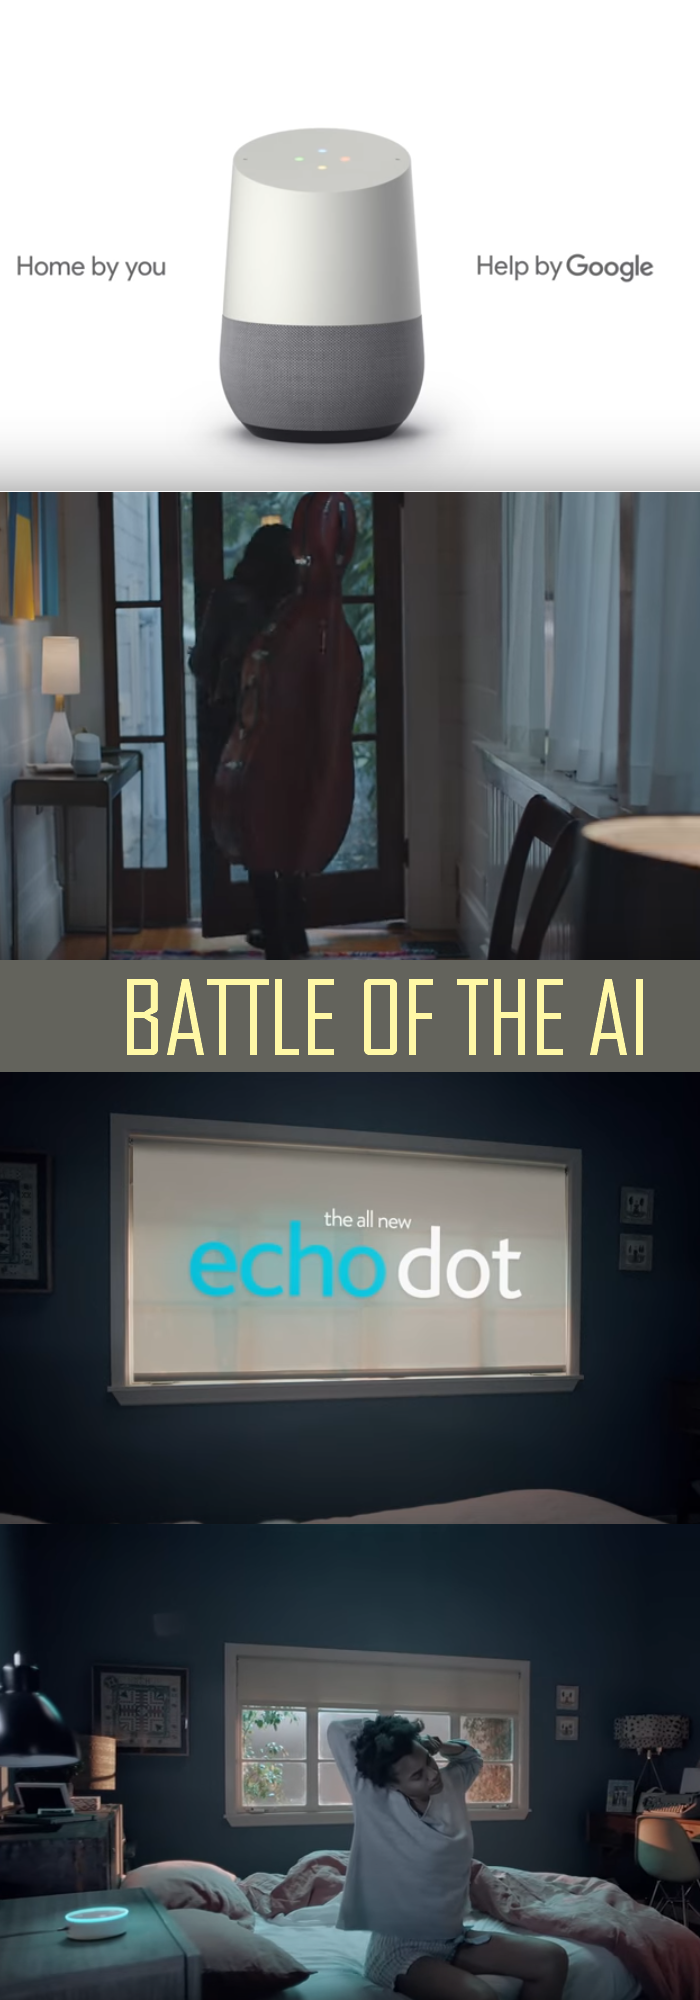 Battle of the AI - Google Home vs Amazon Echo